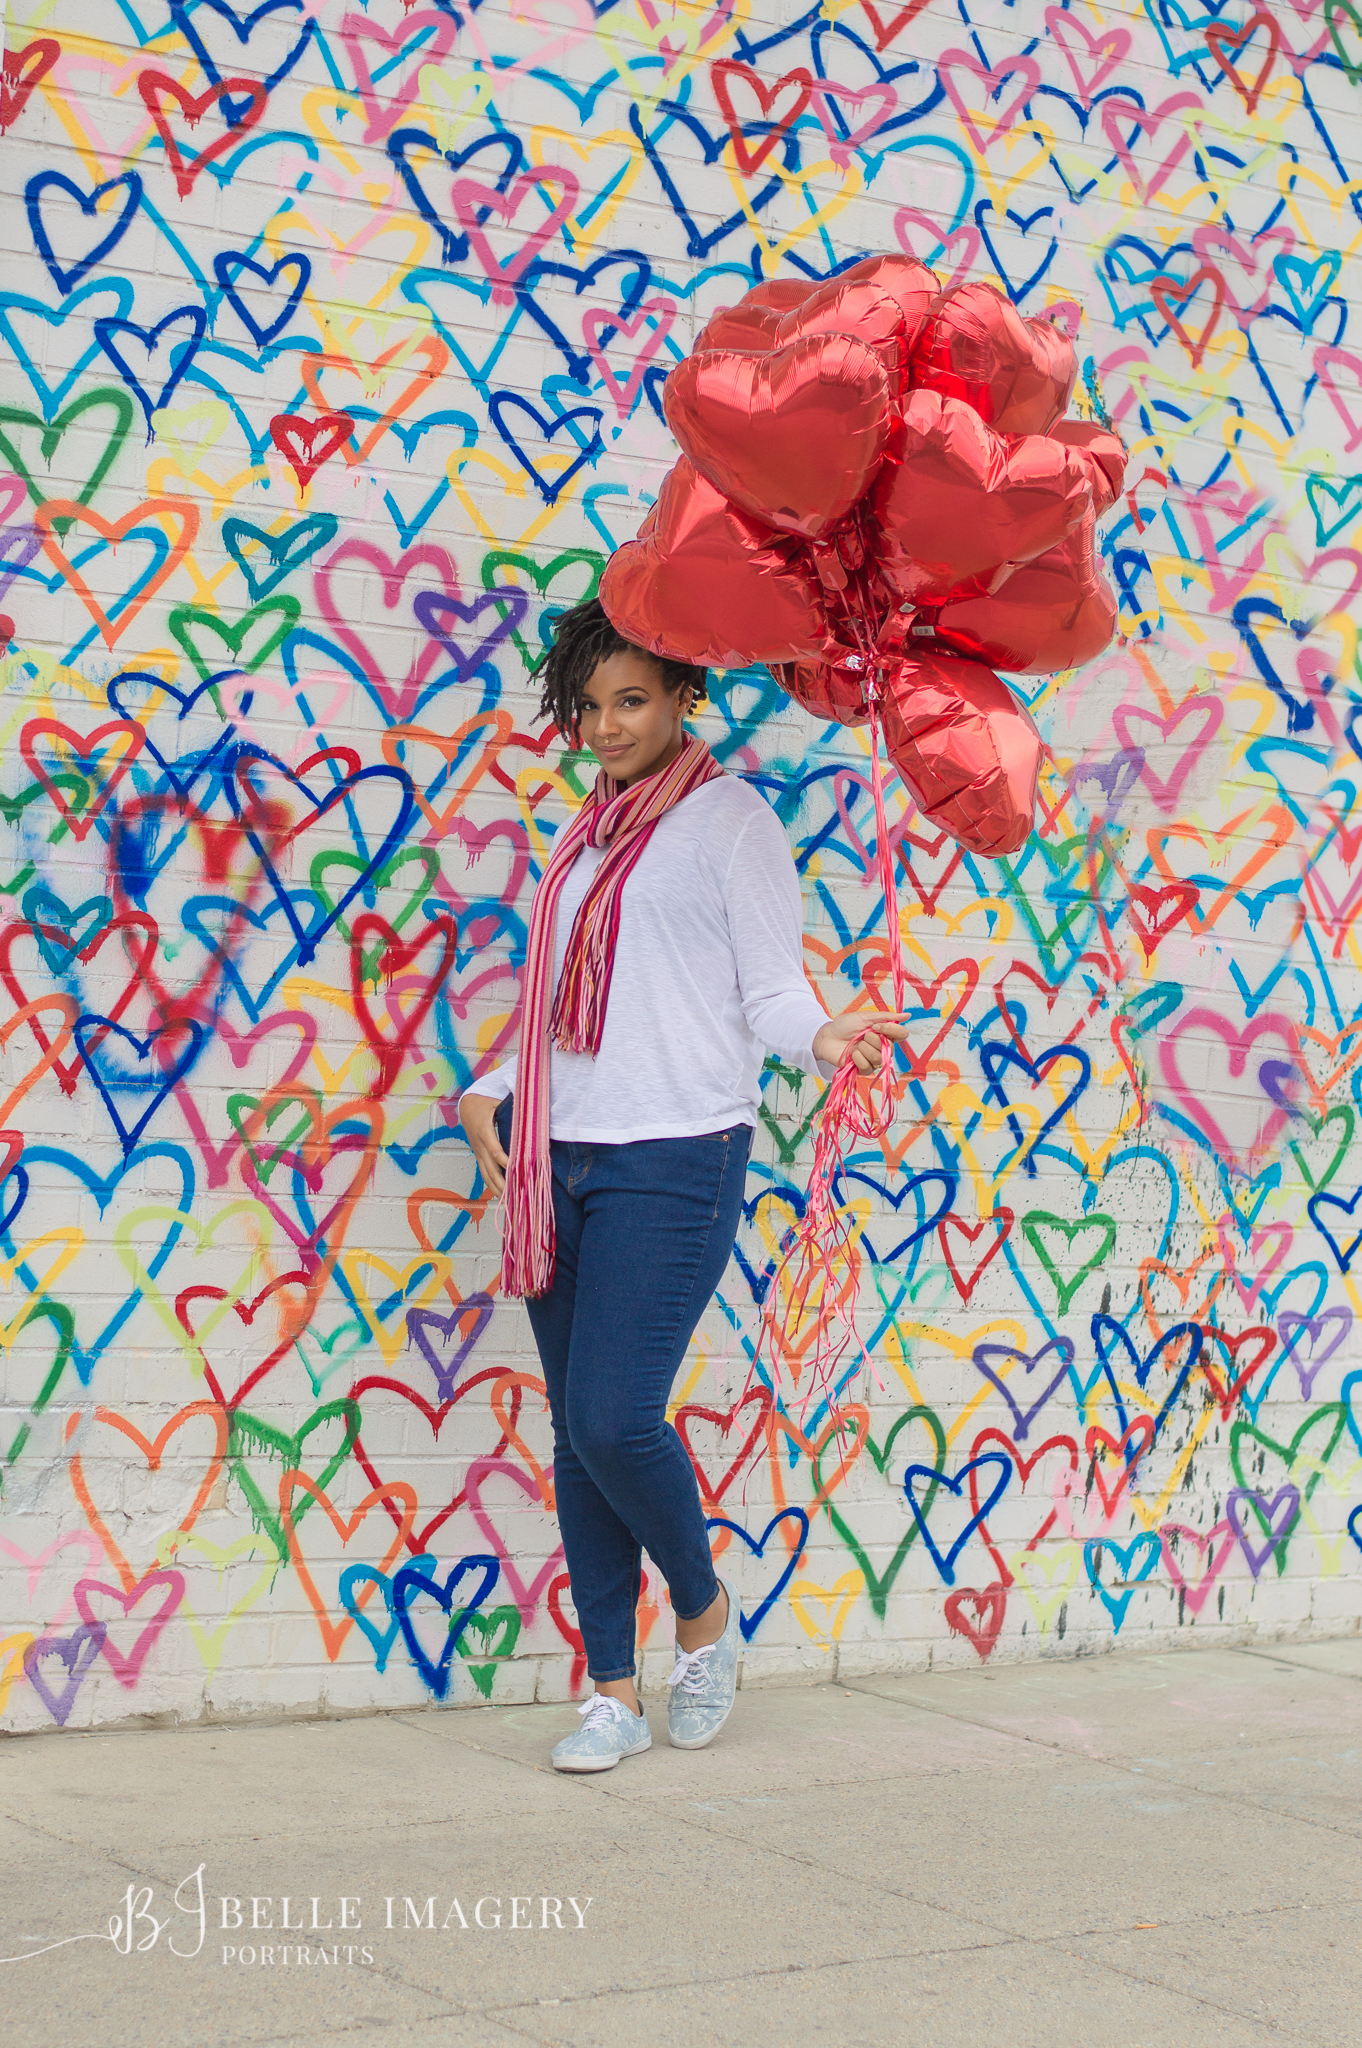 7 Things To Do If You're Single On Valentine's Day